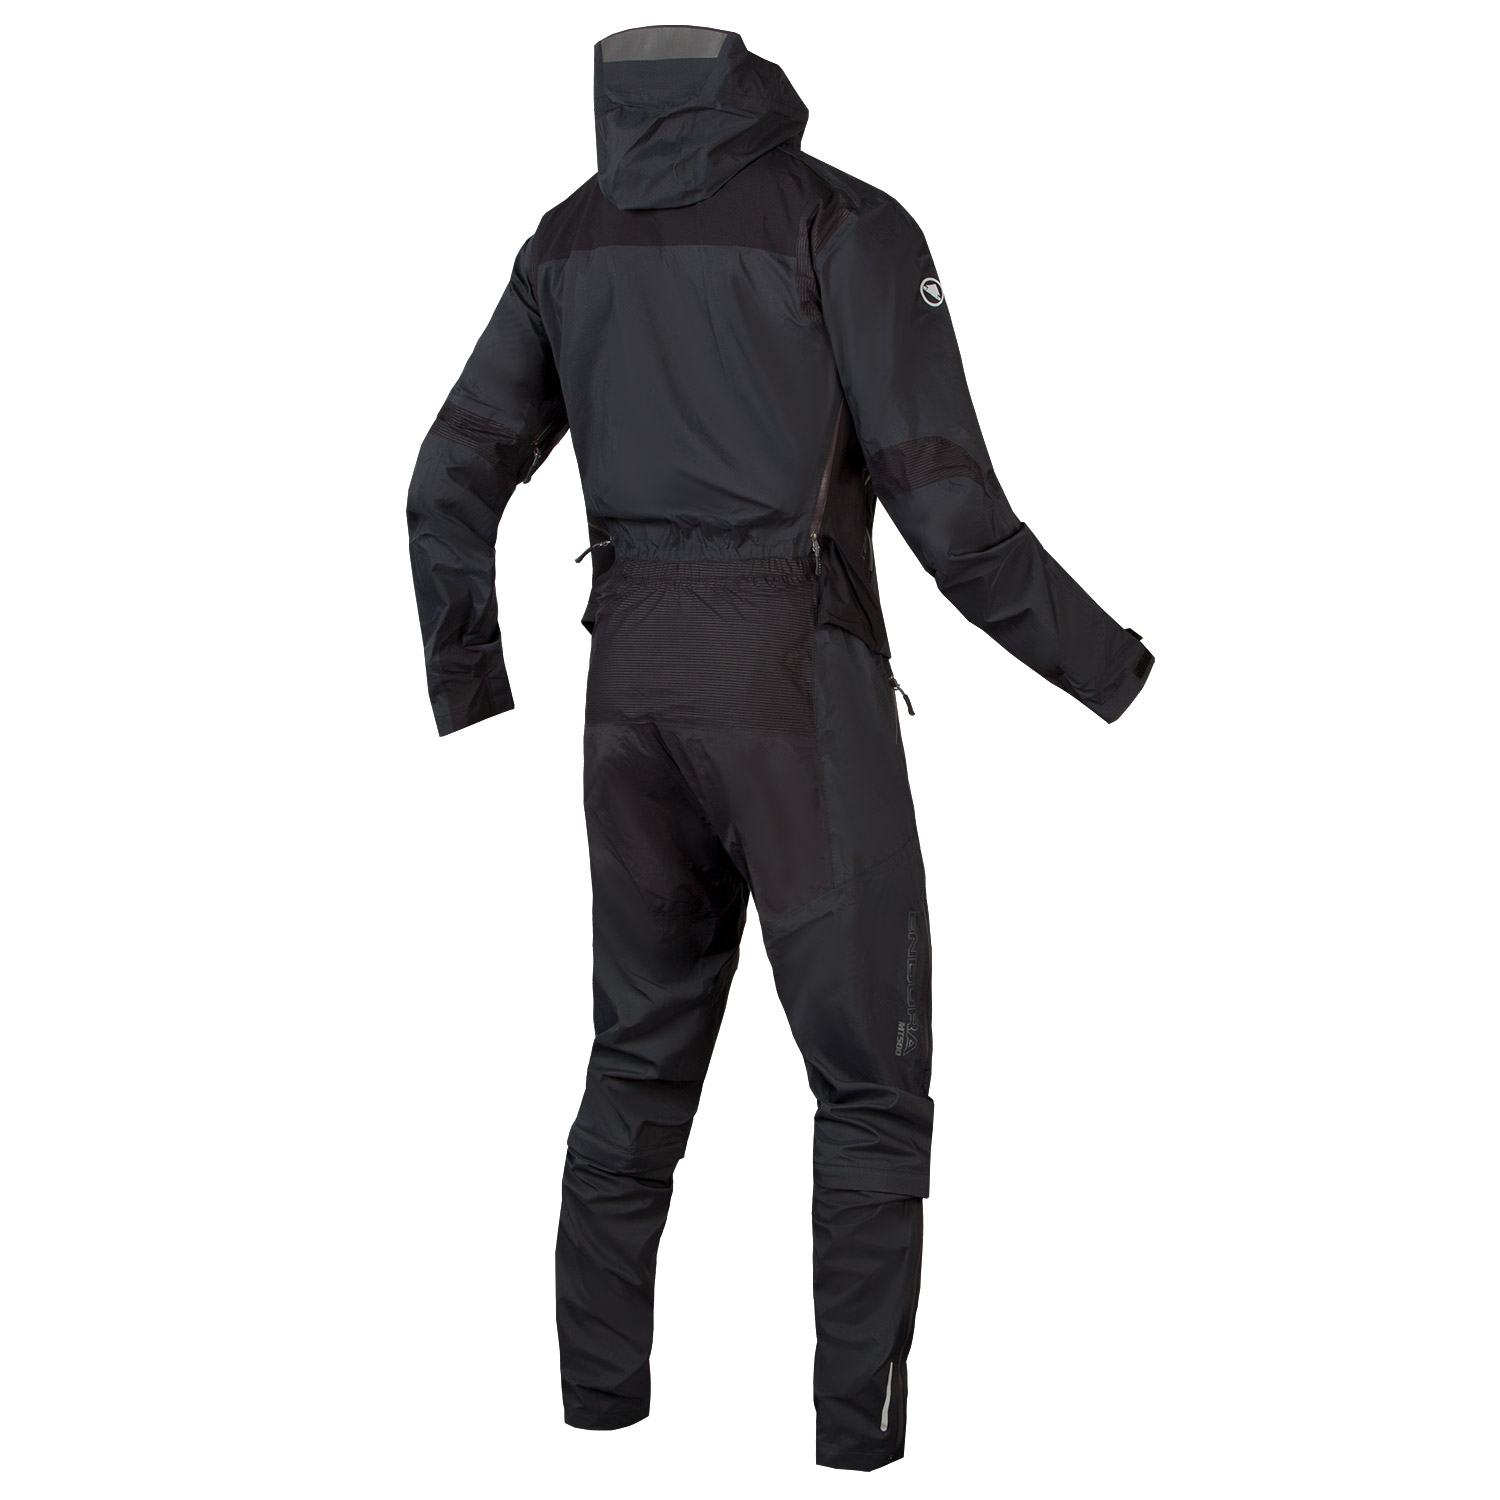 MT500 Waterproof Suit back